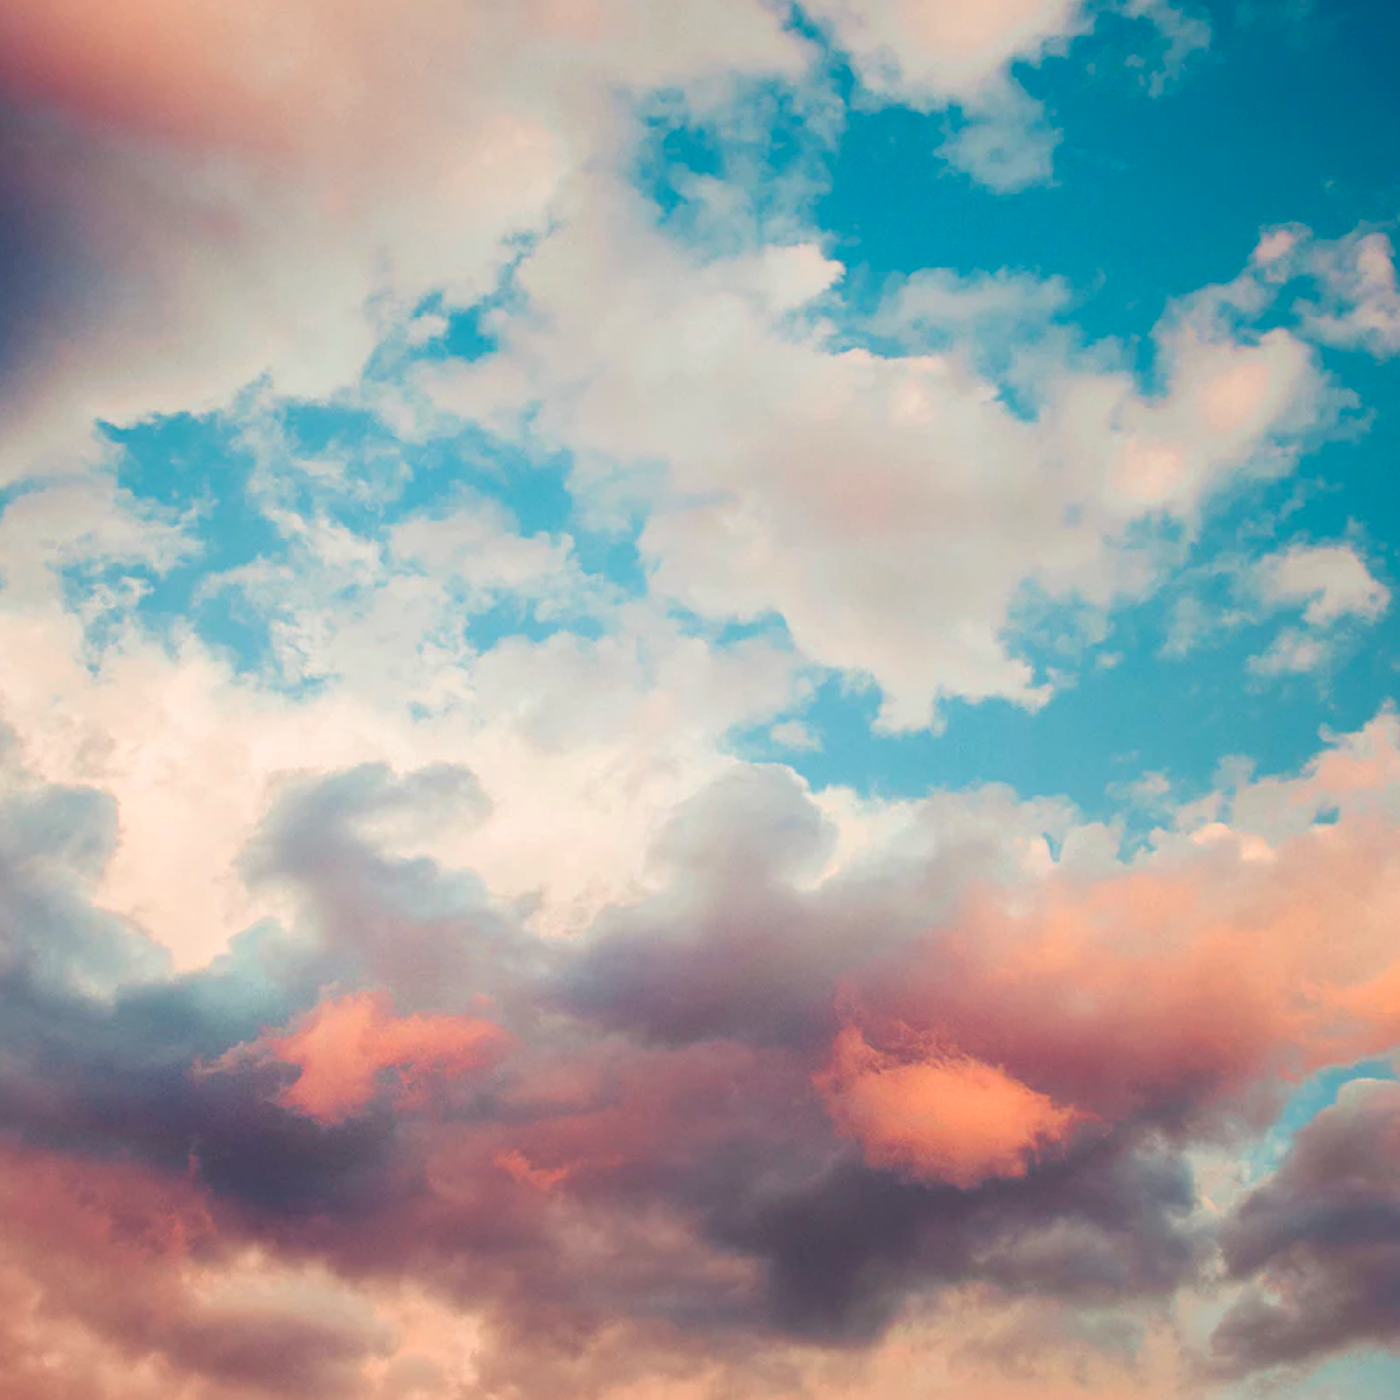 A photo of white and red clouds against a dark blue sky